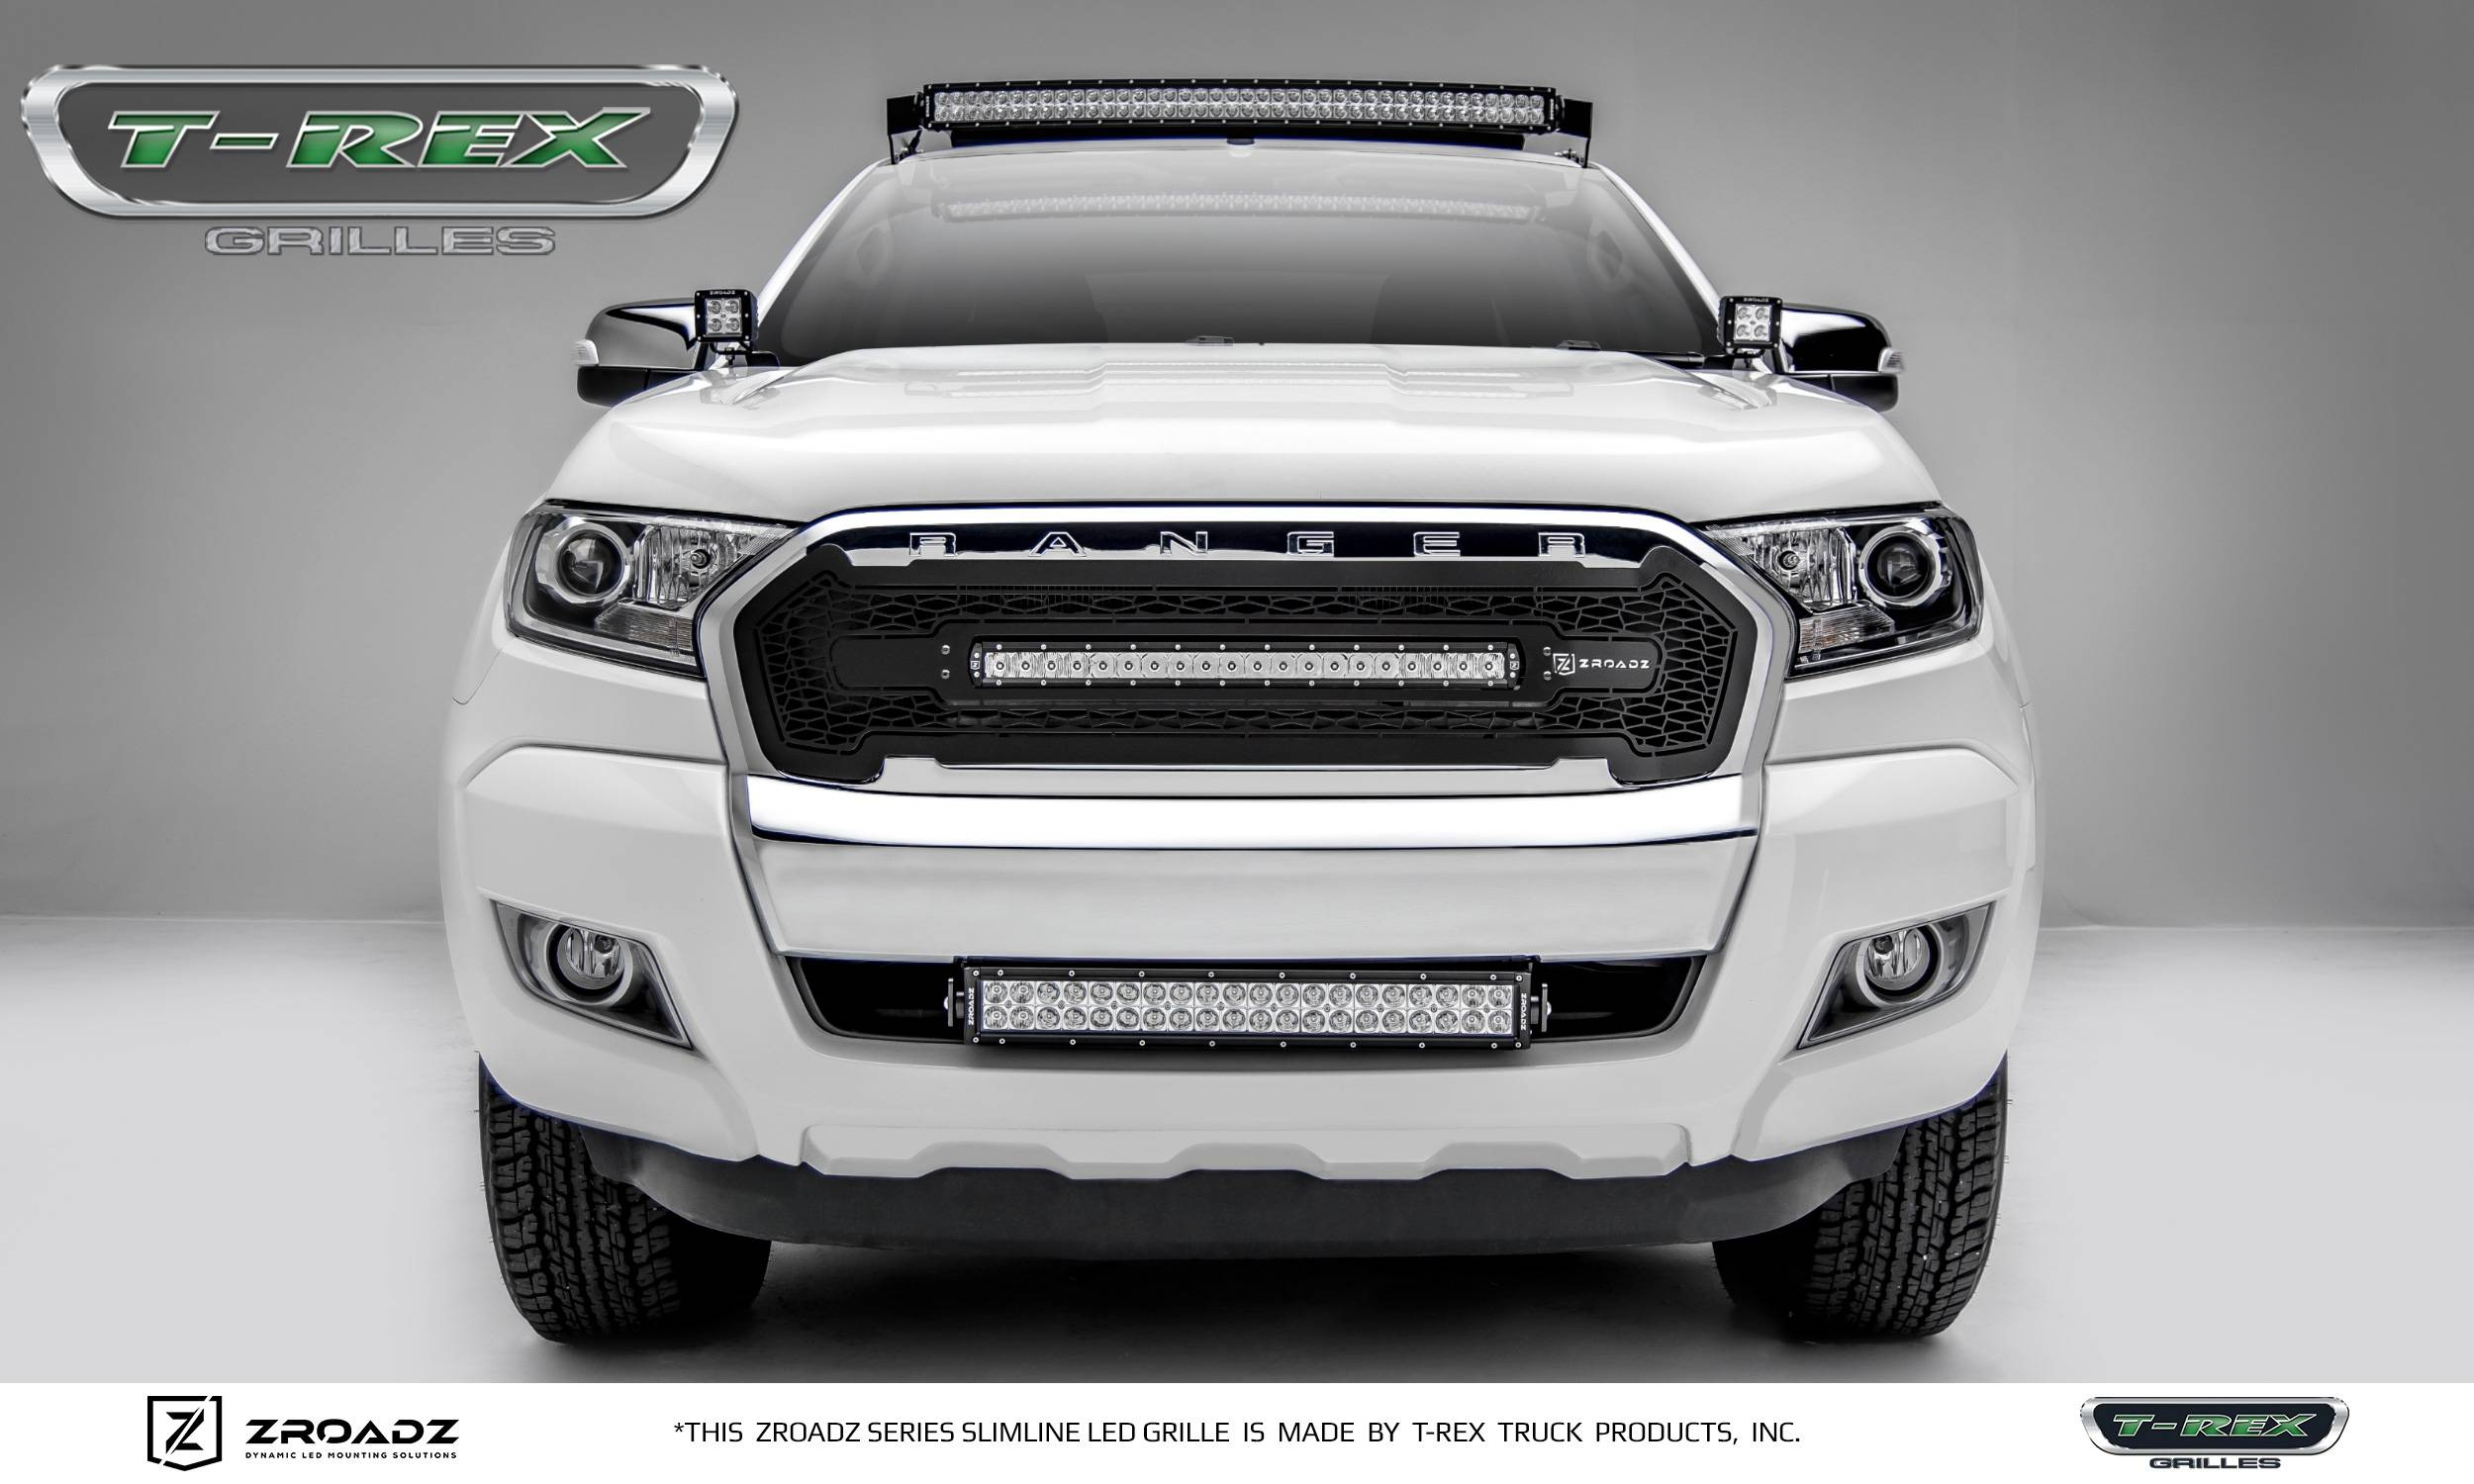 T rex ford ranger t6 zroadz series main replacement grille w t rex ford ranger t6 zroadz series main replacement grille w one 20 inch slim line single row led light bar includes universal wiring harness mozeypictures Gallery